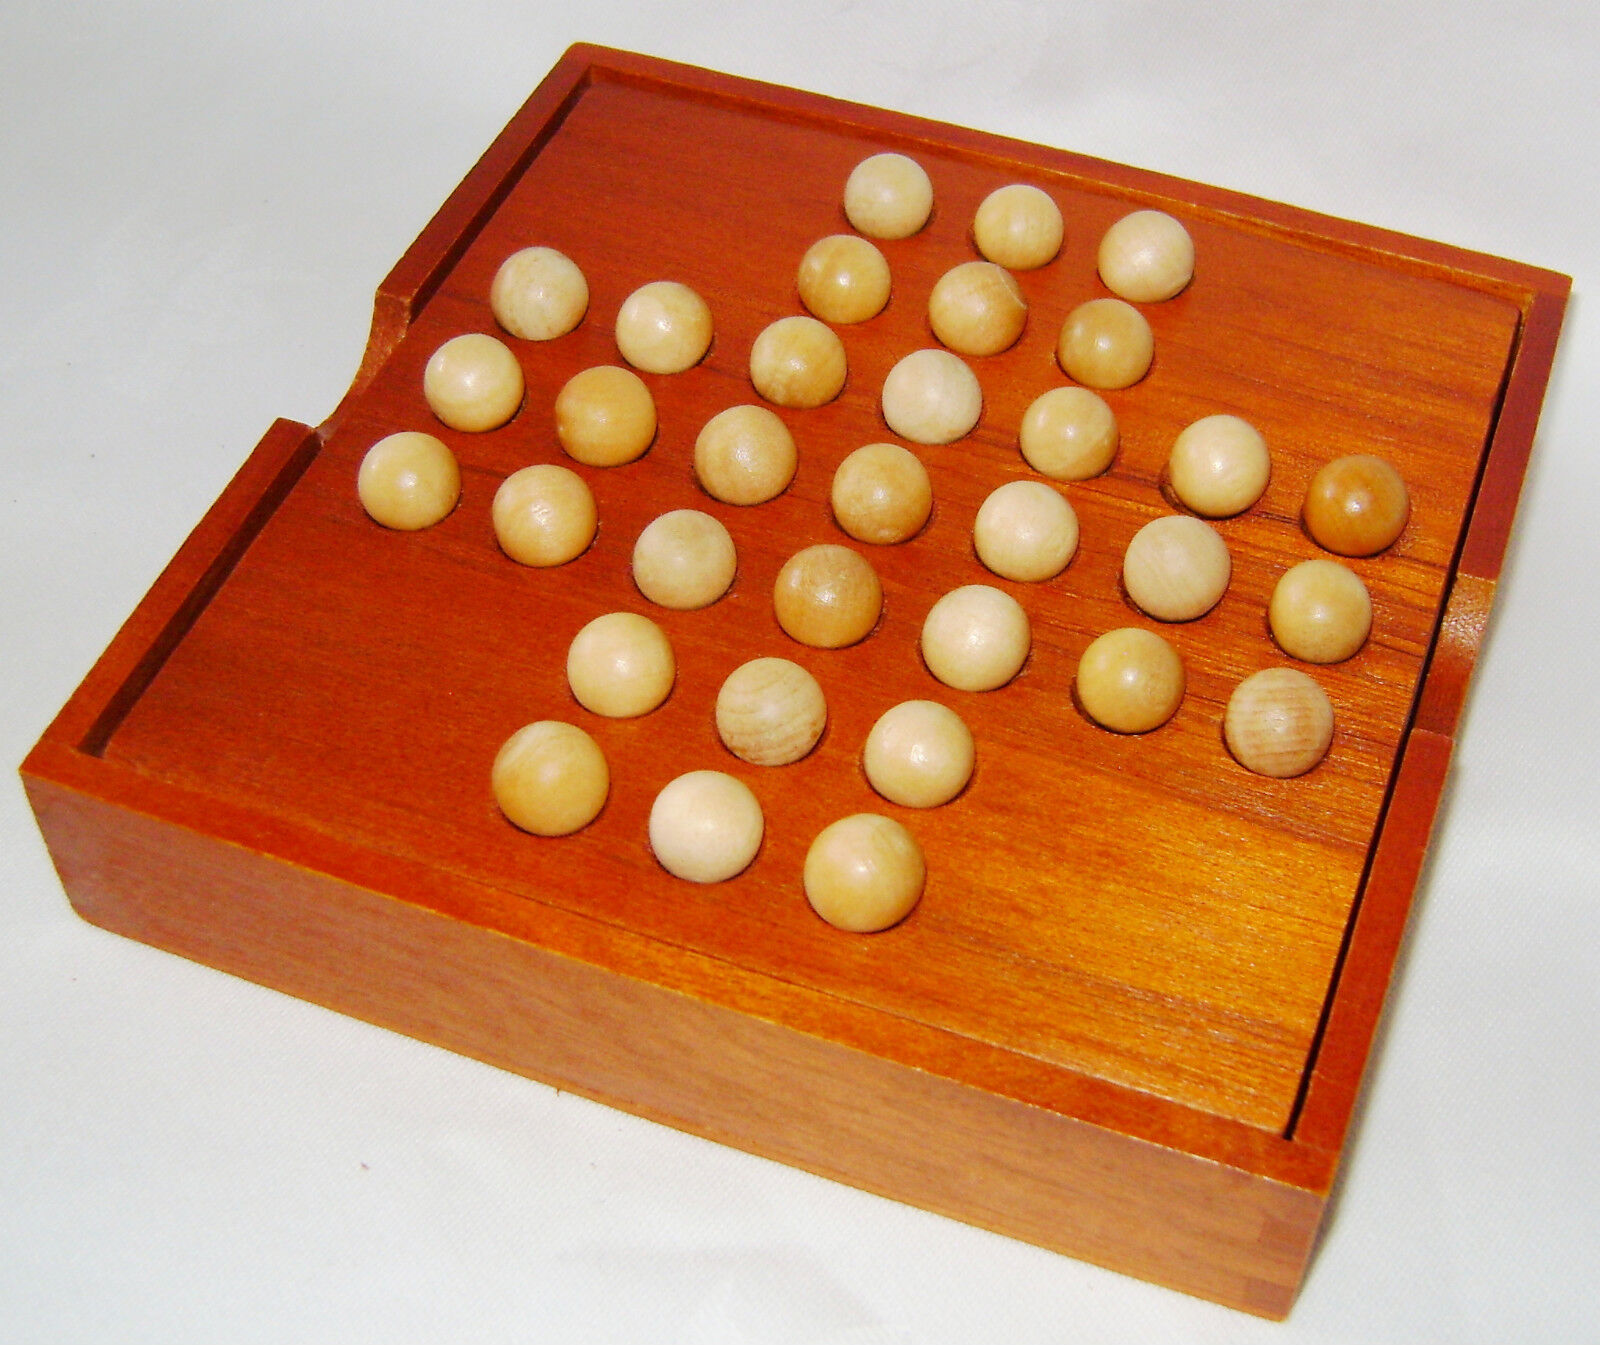 Board with recesses